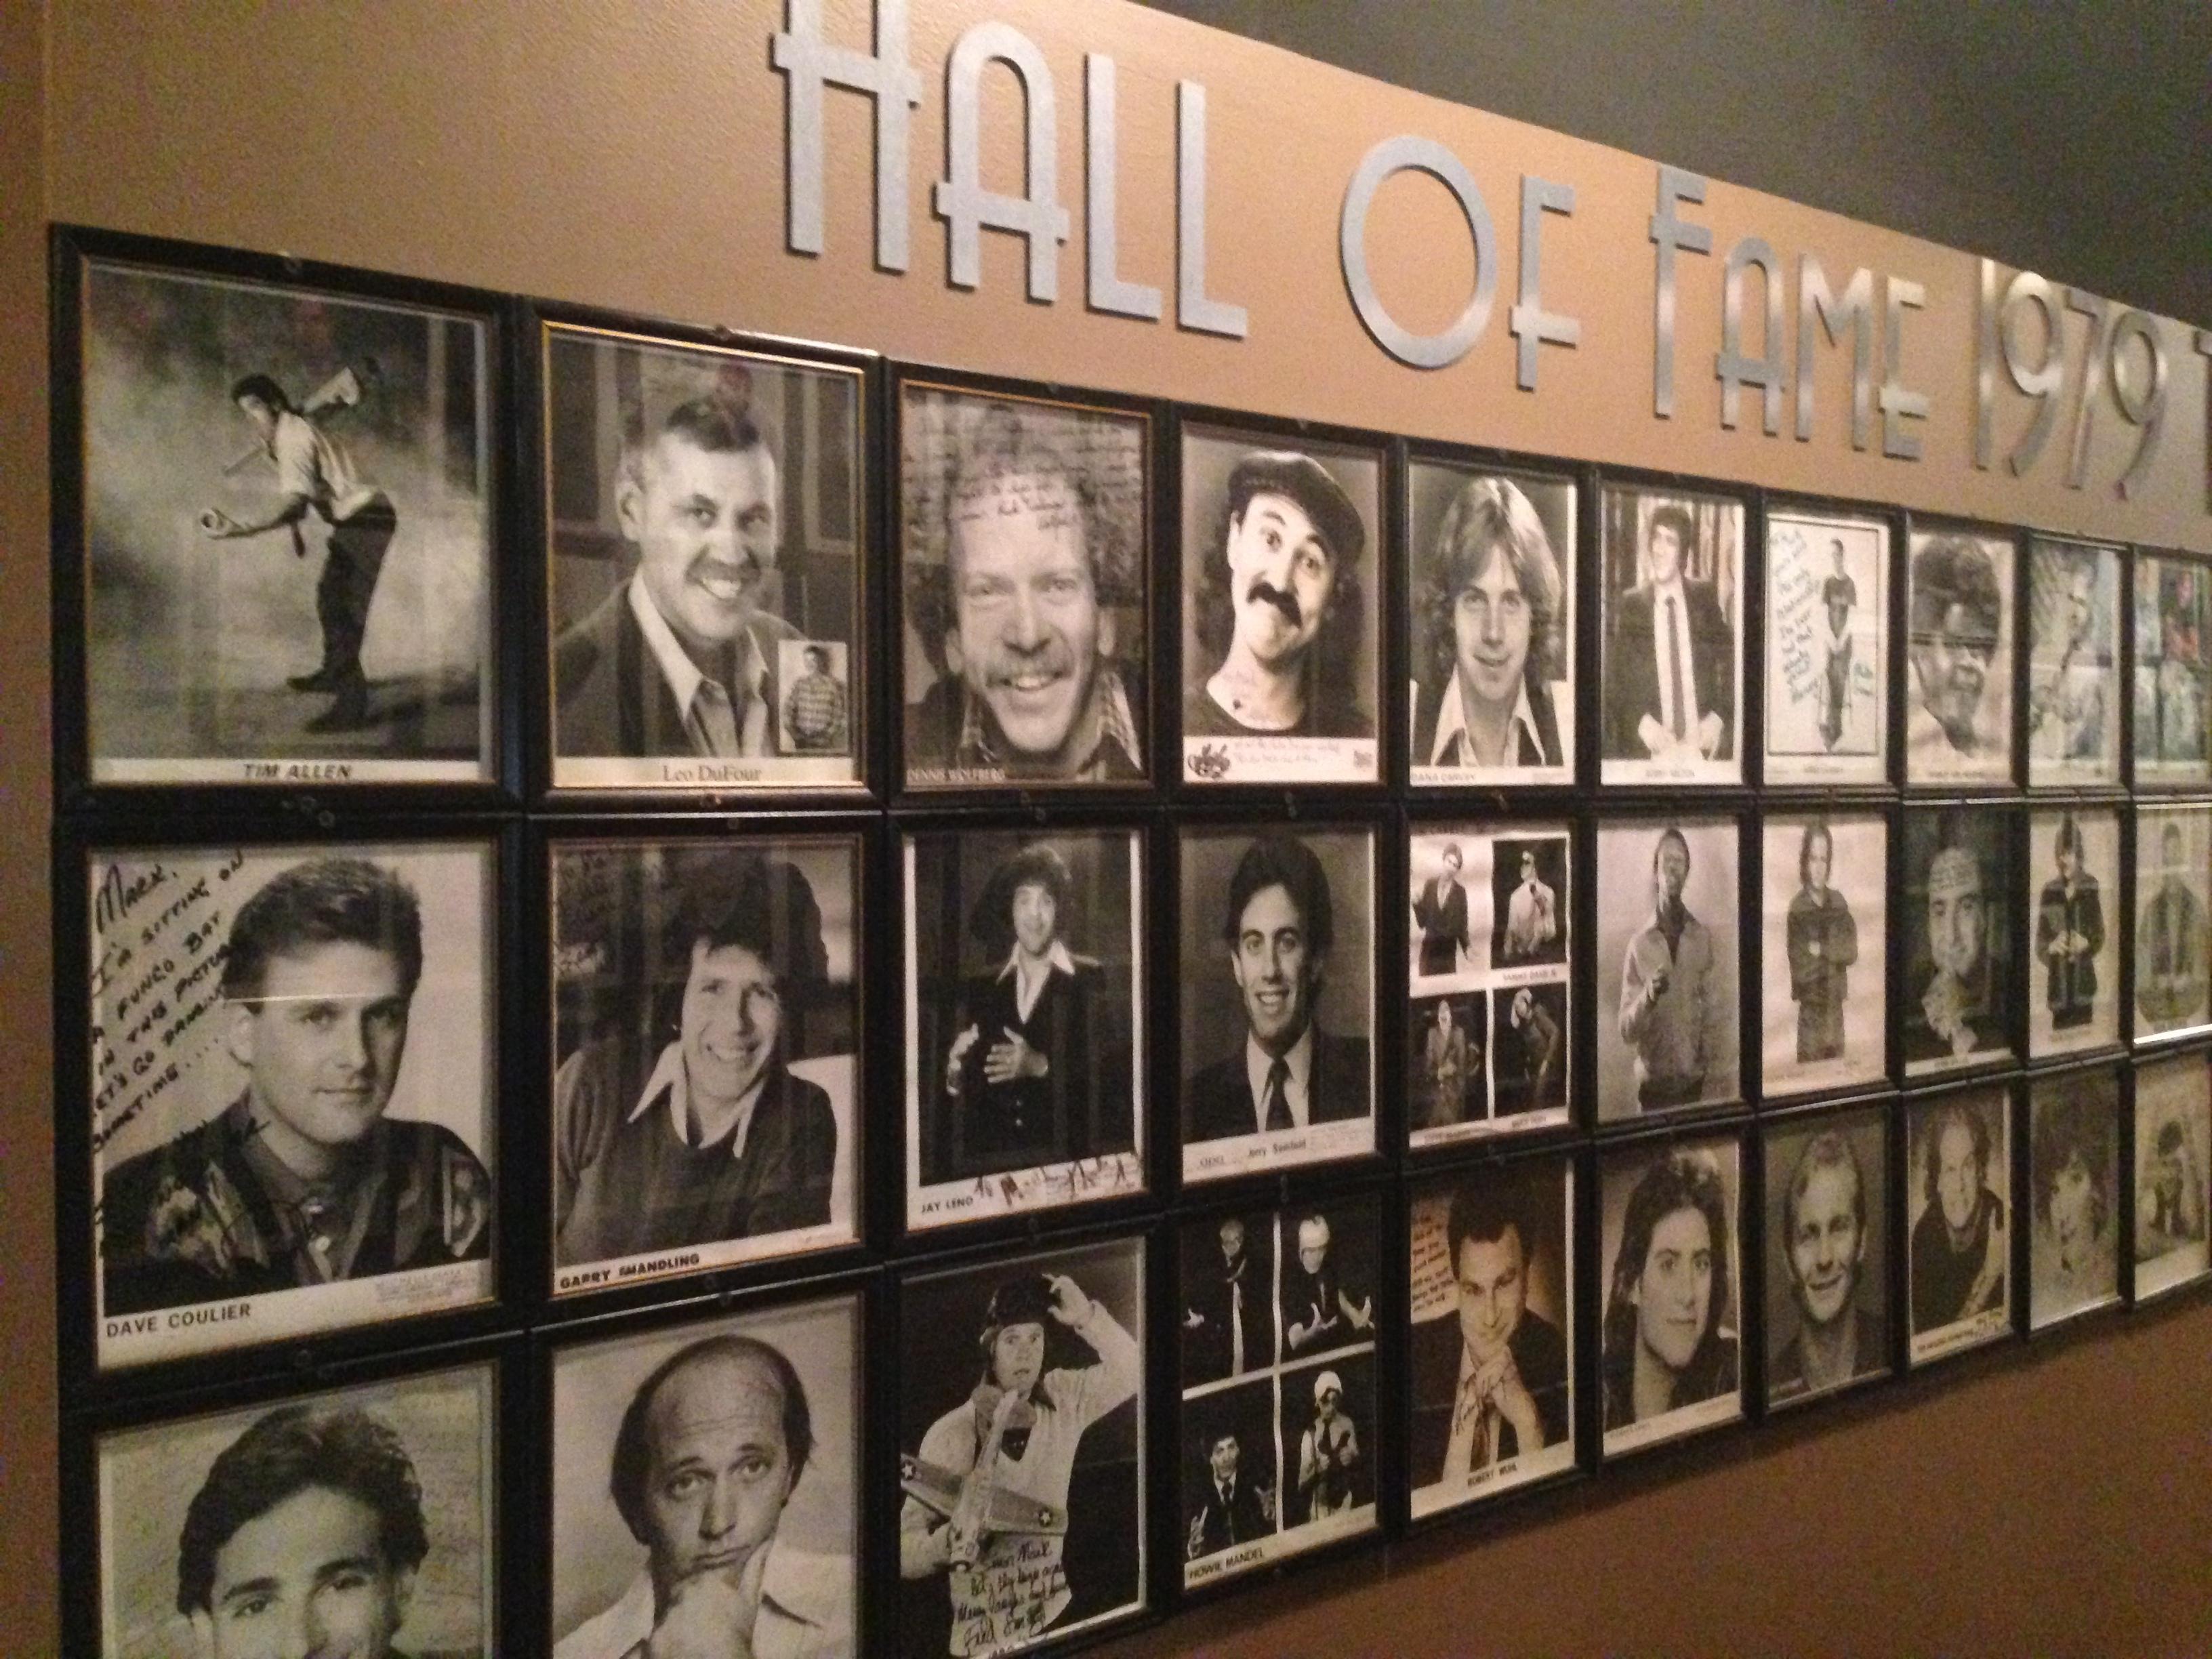 Over 100 photos of comedians on Wall of Fame